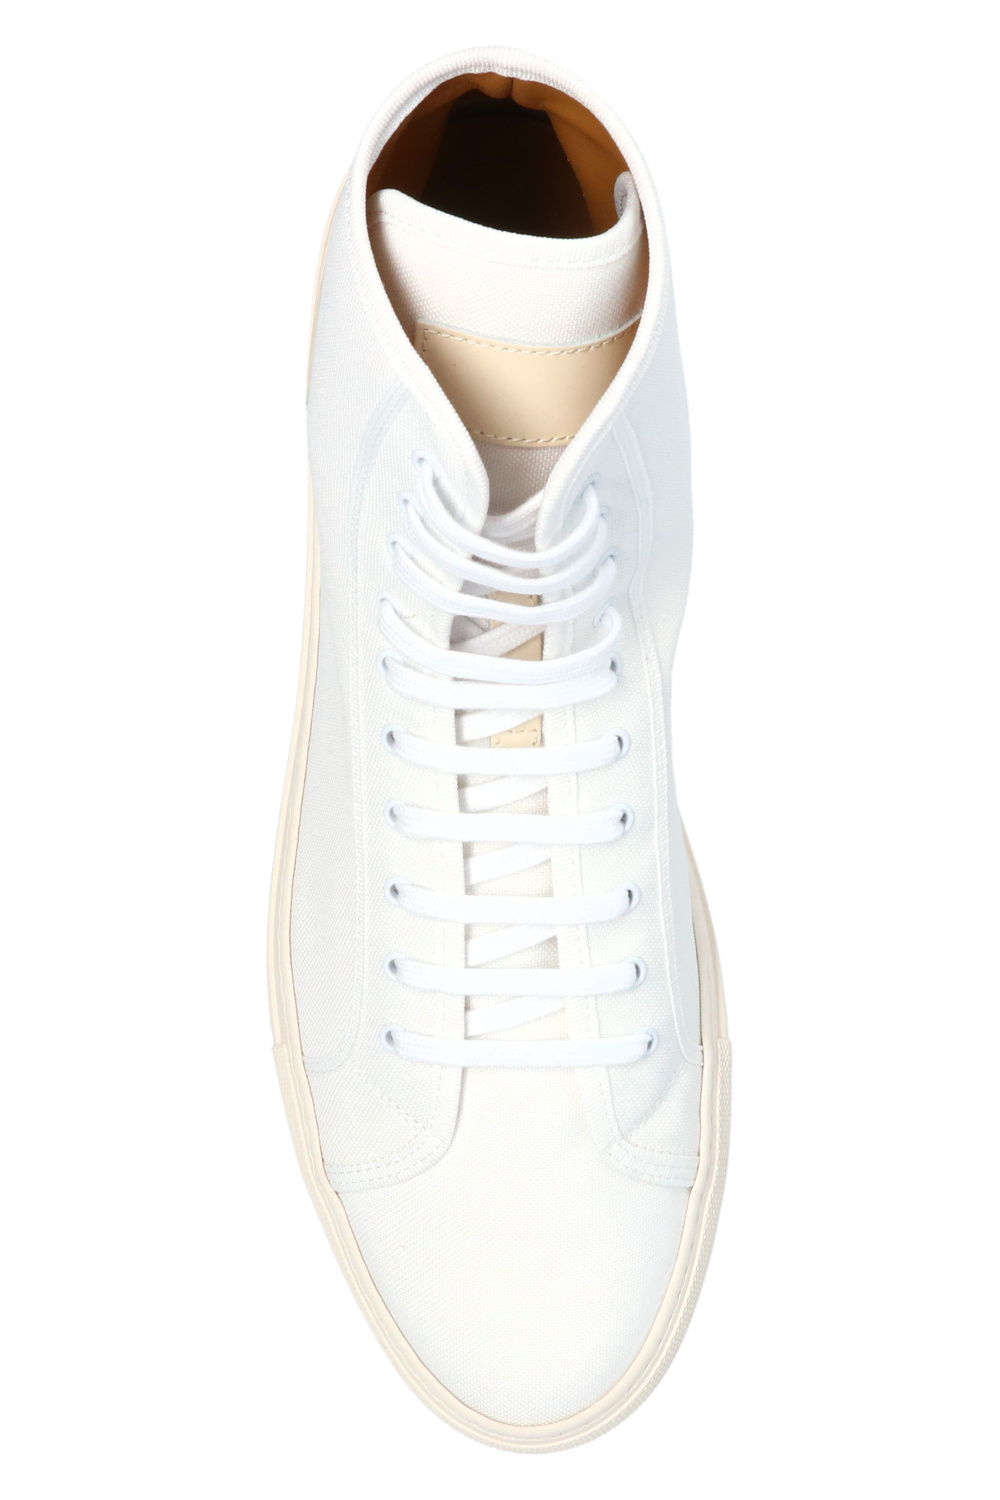 Common Projects 'Tournament High' sneakers